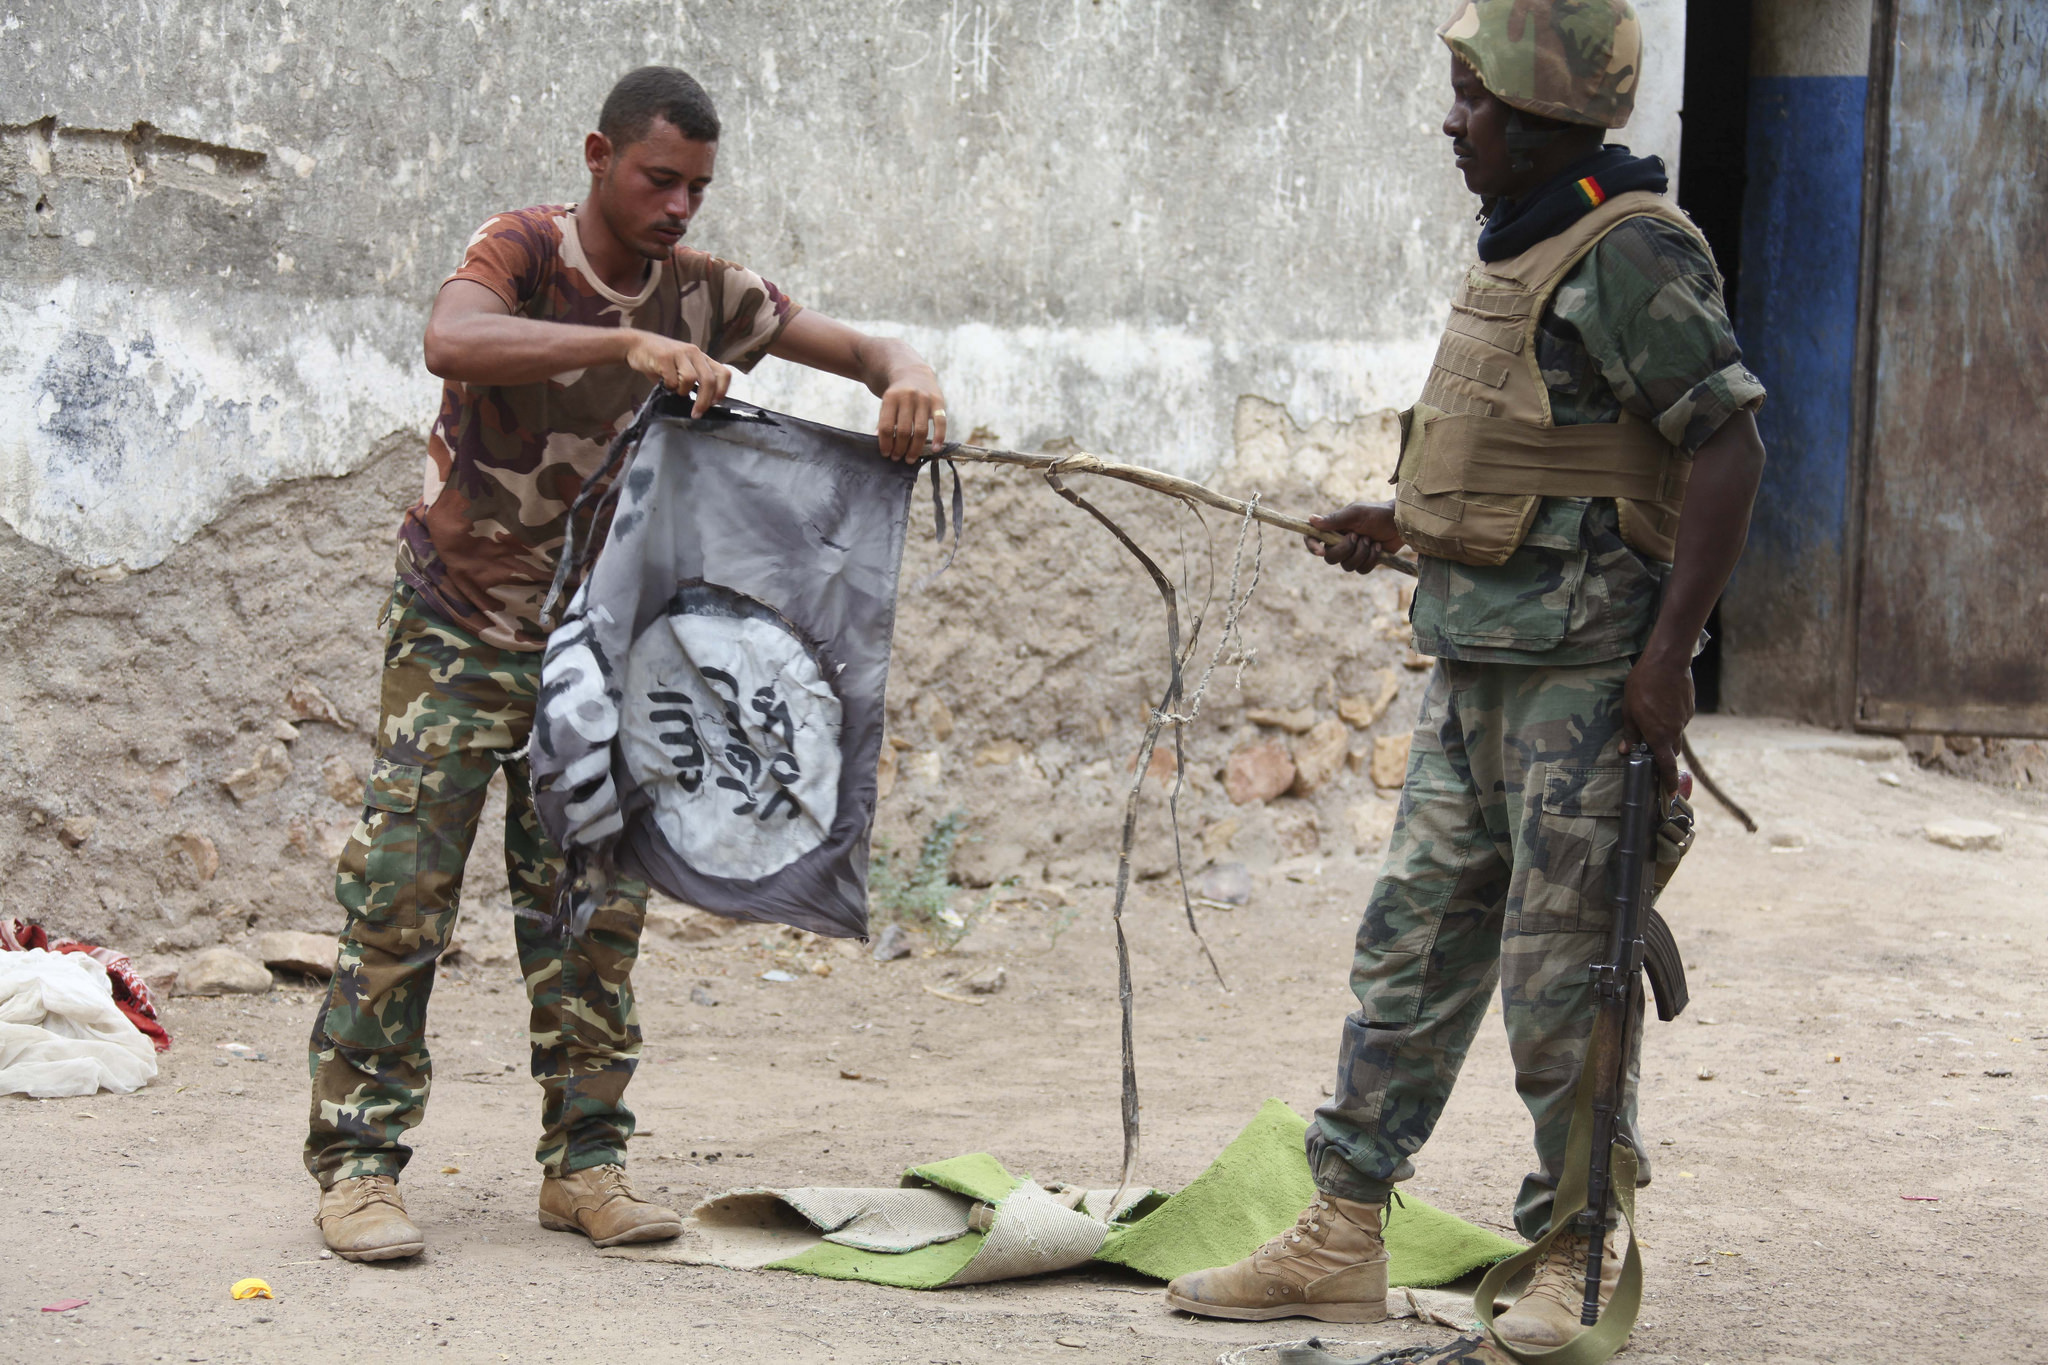 Djiboutian soldiers destroy an al Shabaab flag after the town of Bula Burde was liberated by AMISOM forces on 16th March 2014